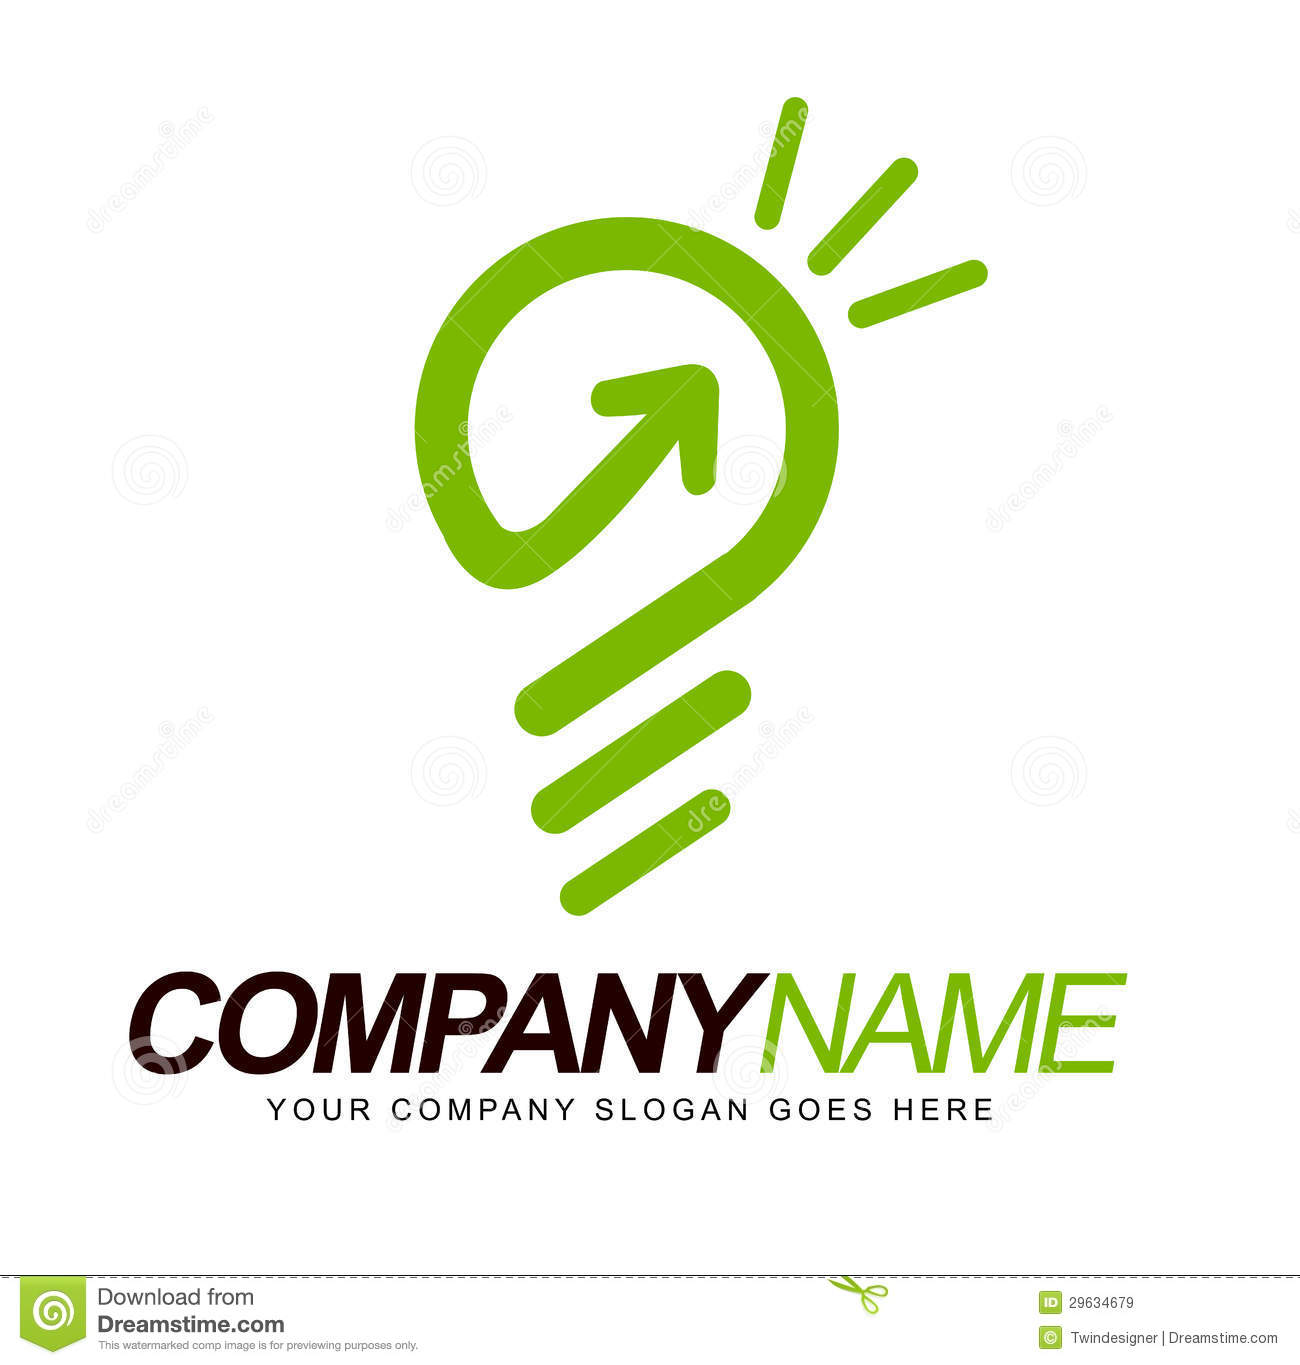 ... company logo representing a light bulb and smart concept behind it